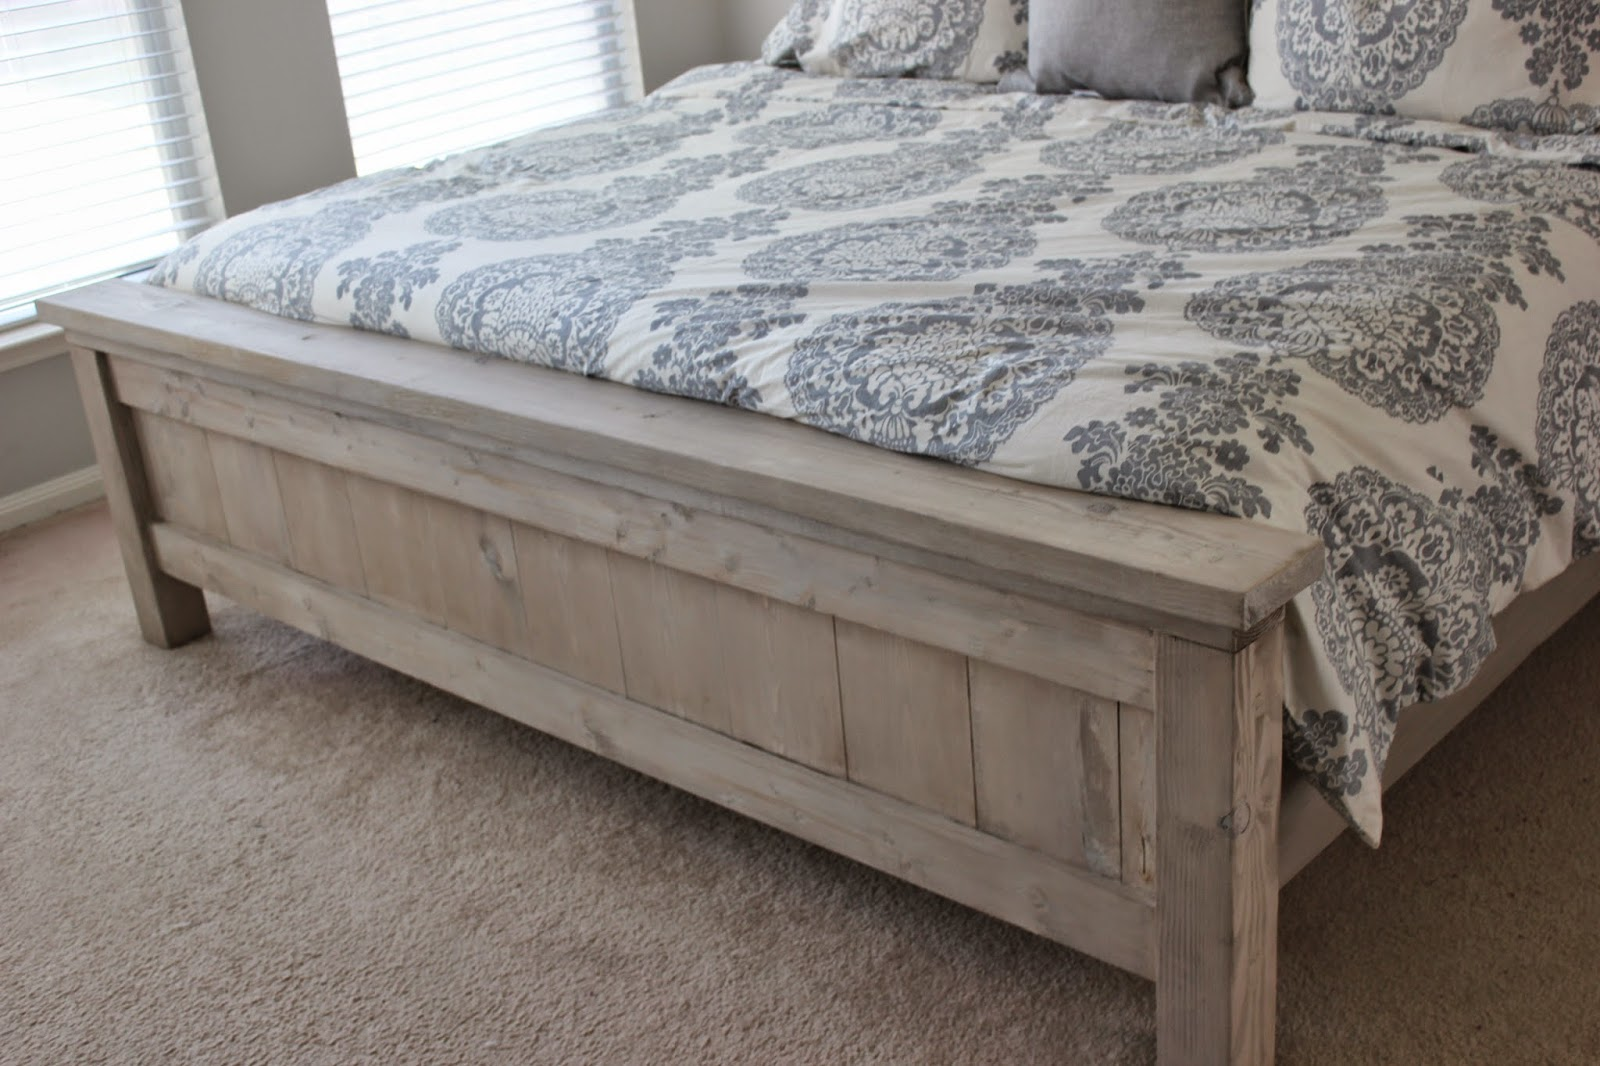 Here Are Two Links From Different Sites My Husband Found Very Helpful While Making This Bed